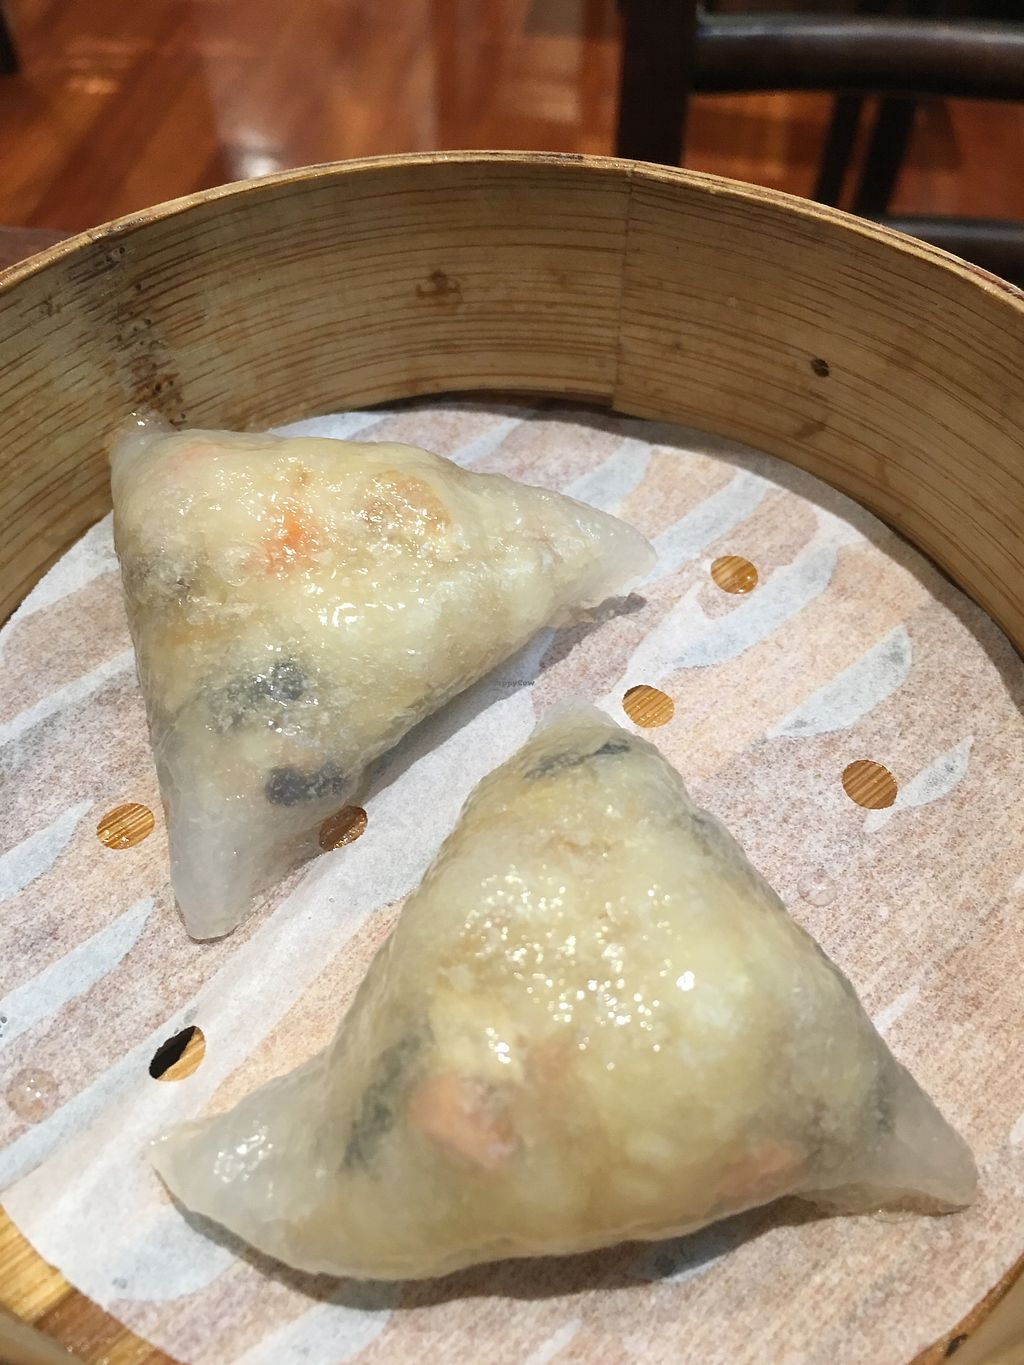 "Photo of LockCha Tea House  by <a href=""/members/profile/Veg4Jay"">Veg4Jay</a> <br/>Steamed Mushrooms & Celery Dumpling <br/> April 11, 2018  - <a href='/contact/abuse/image/11069/383714'>Report</a>"